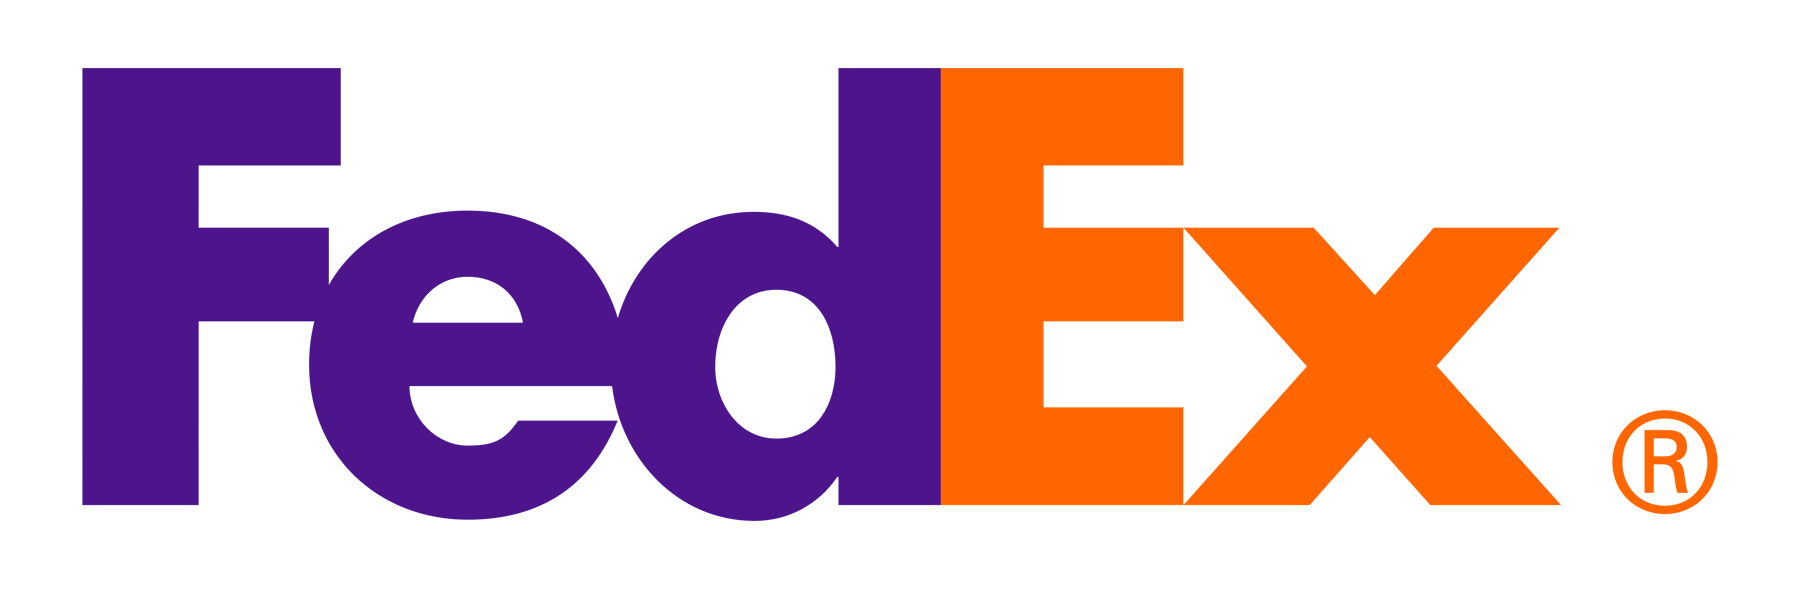 Meaning FedEx logo and symbol.